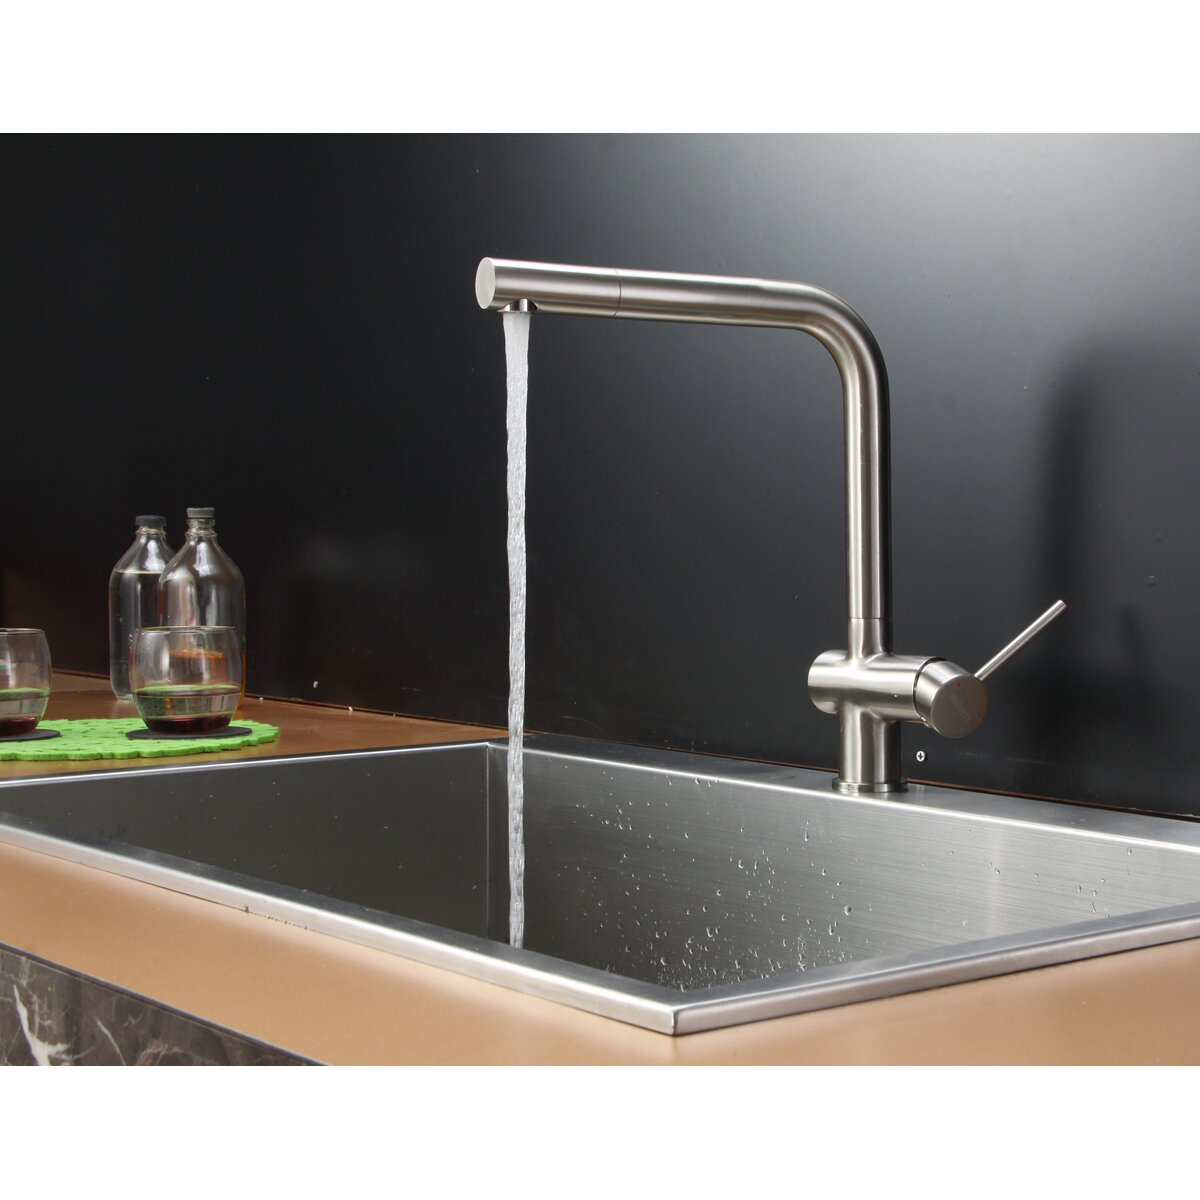 single bowl kitchen sink drop in tirana 33 quot x 21 quot drop in single bowl kitchen sink wayfair 9304